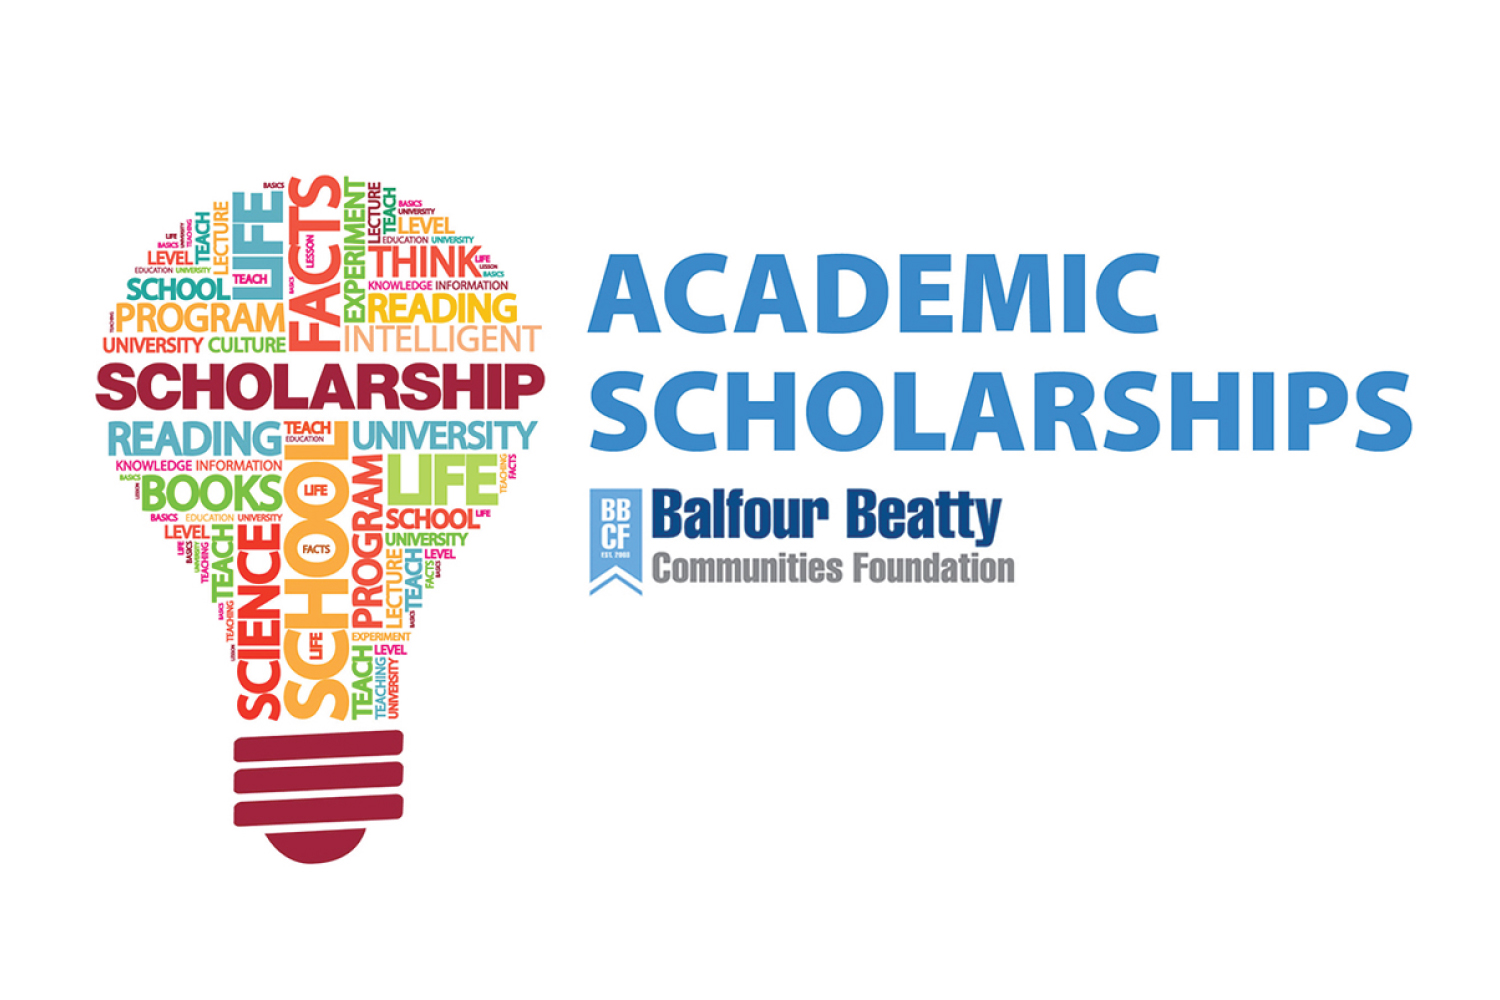 Balfour Beatty Communities Foundation awards more than $120,000 in Scholarships to residents